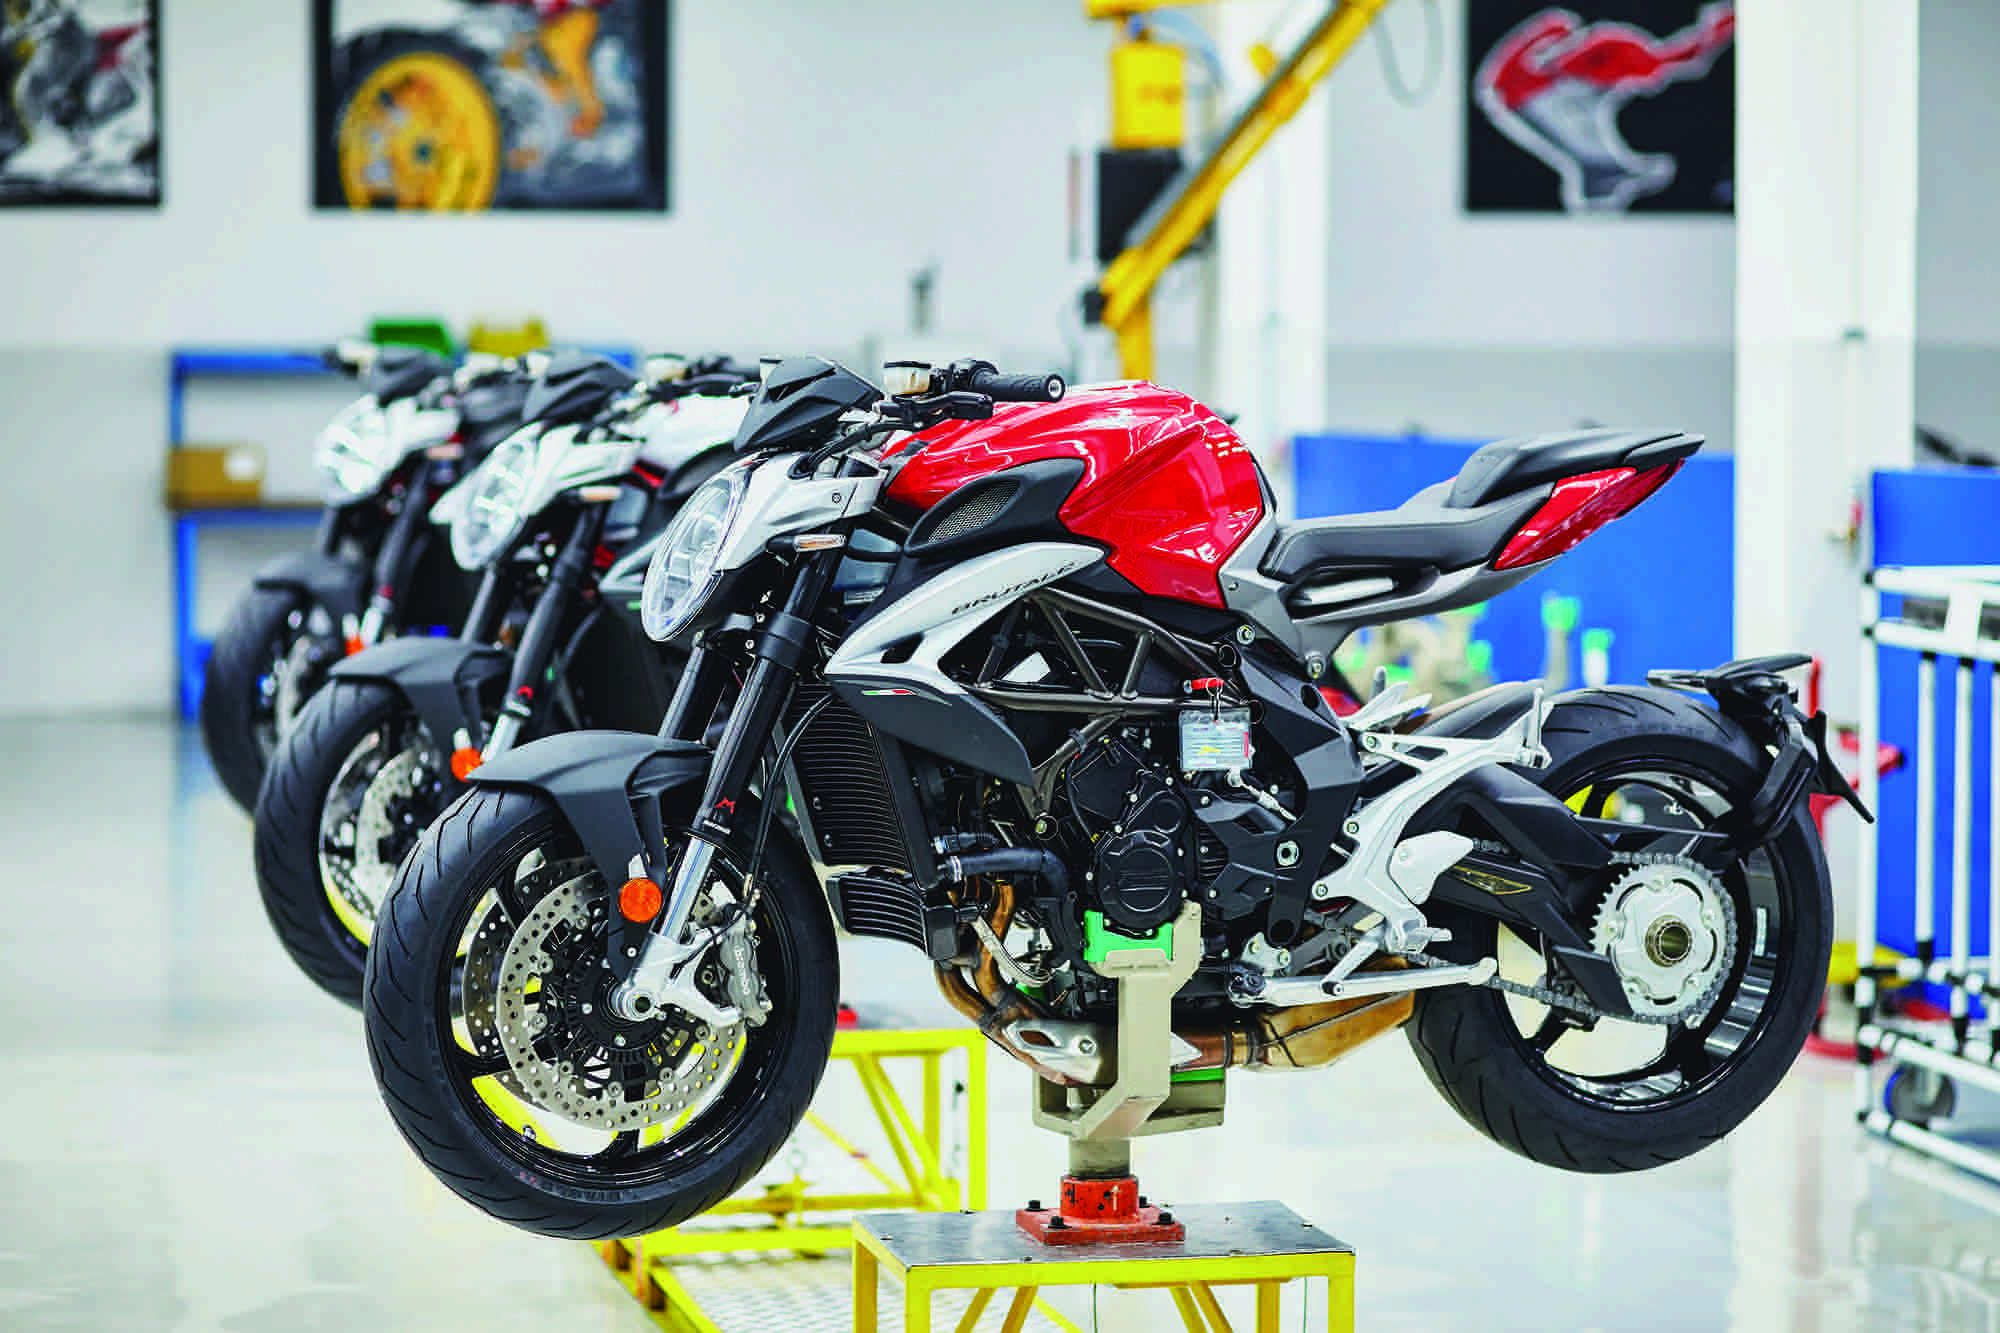 MV Agusta Brutale Workshop